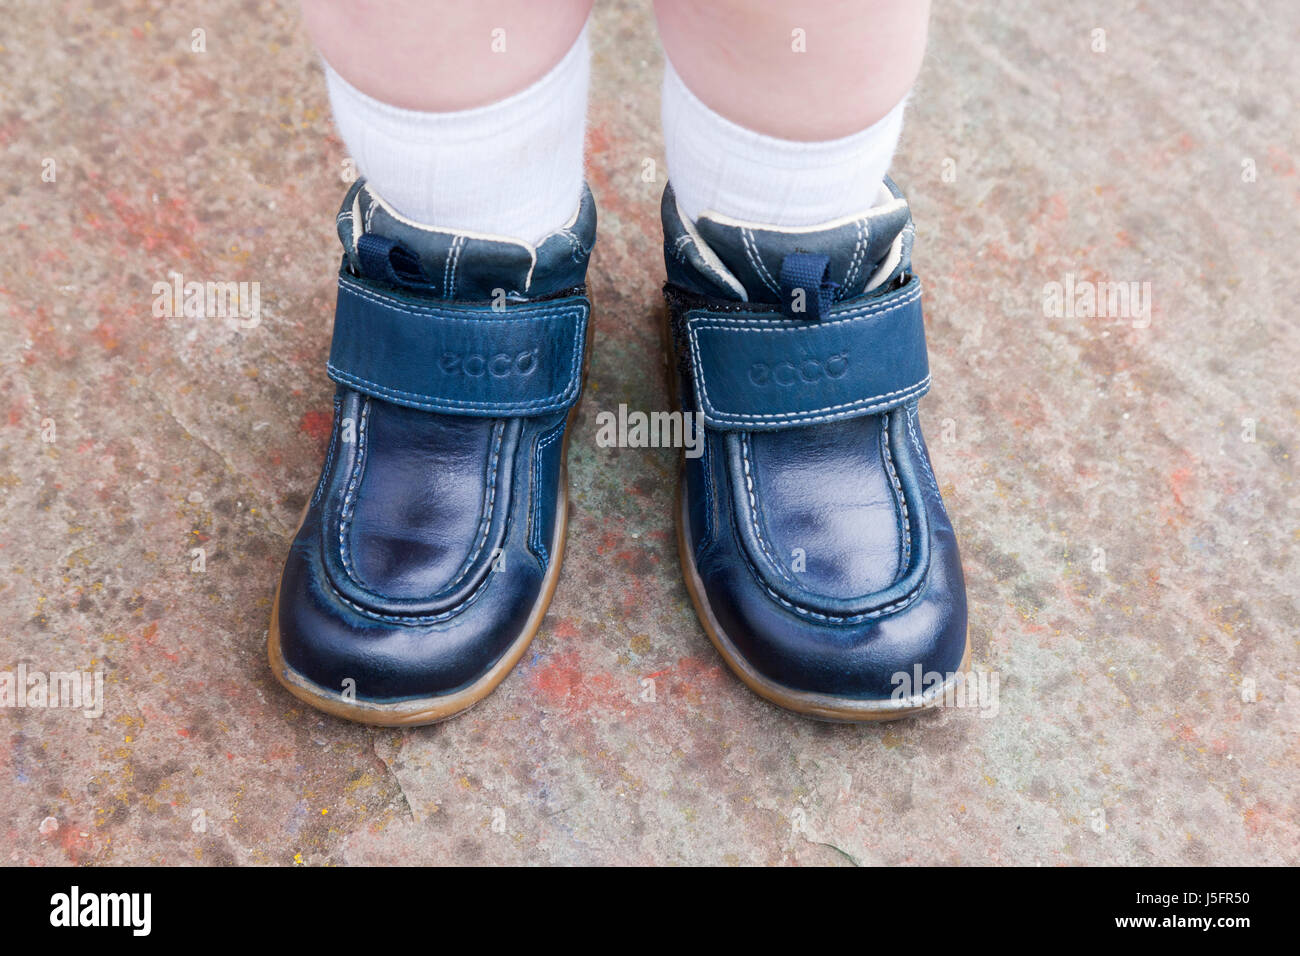 Childrens Walking Shoes